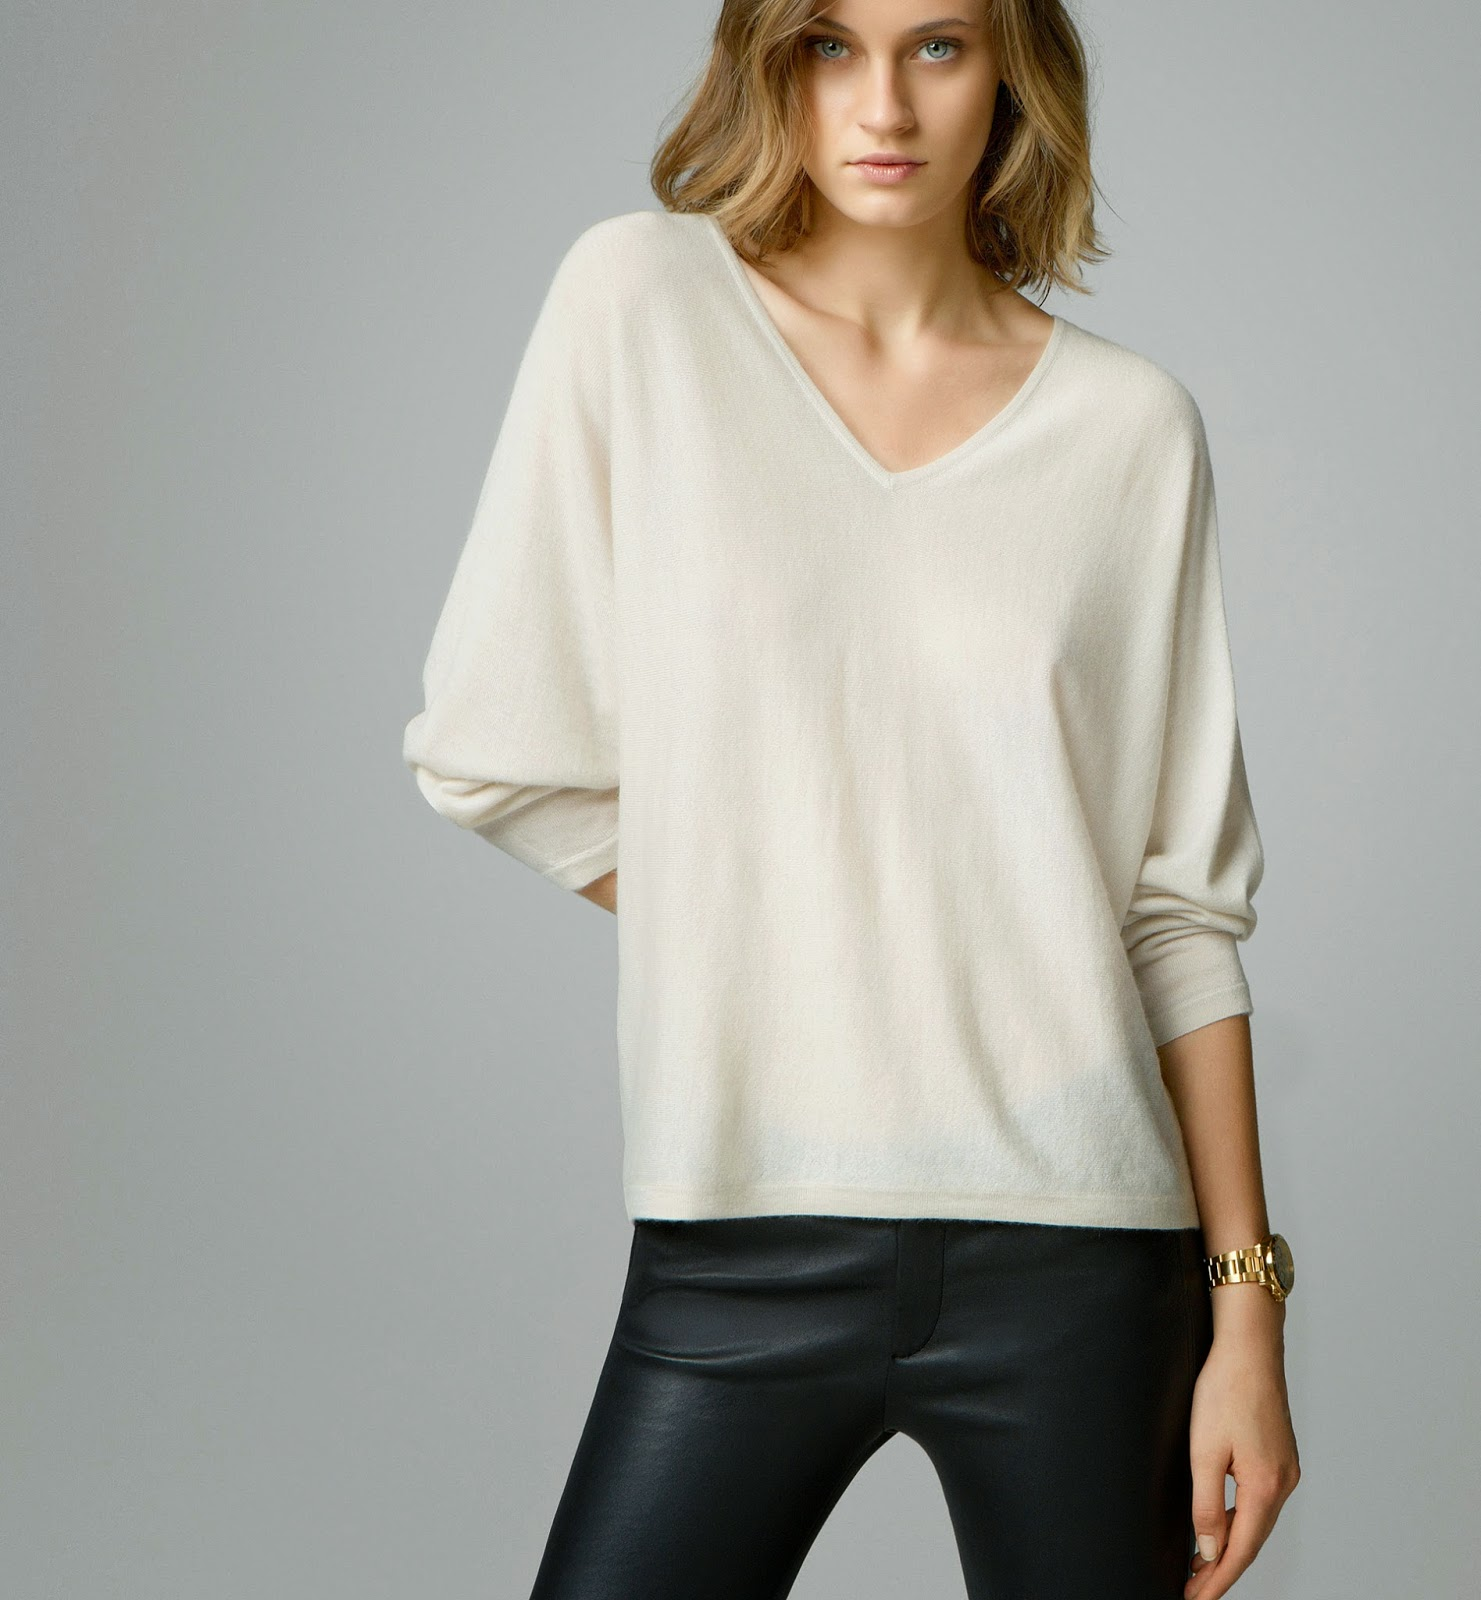 an ideal top to wear on skin that is inflamed or irritated